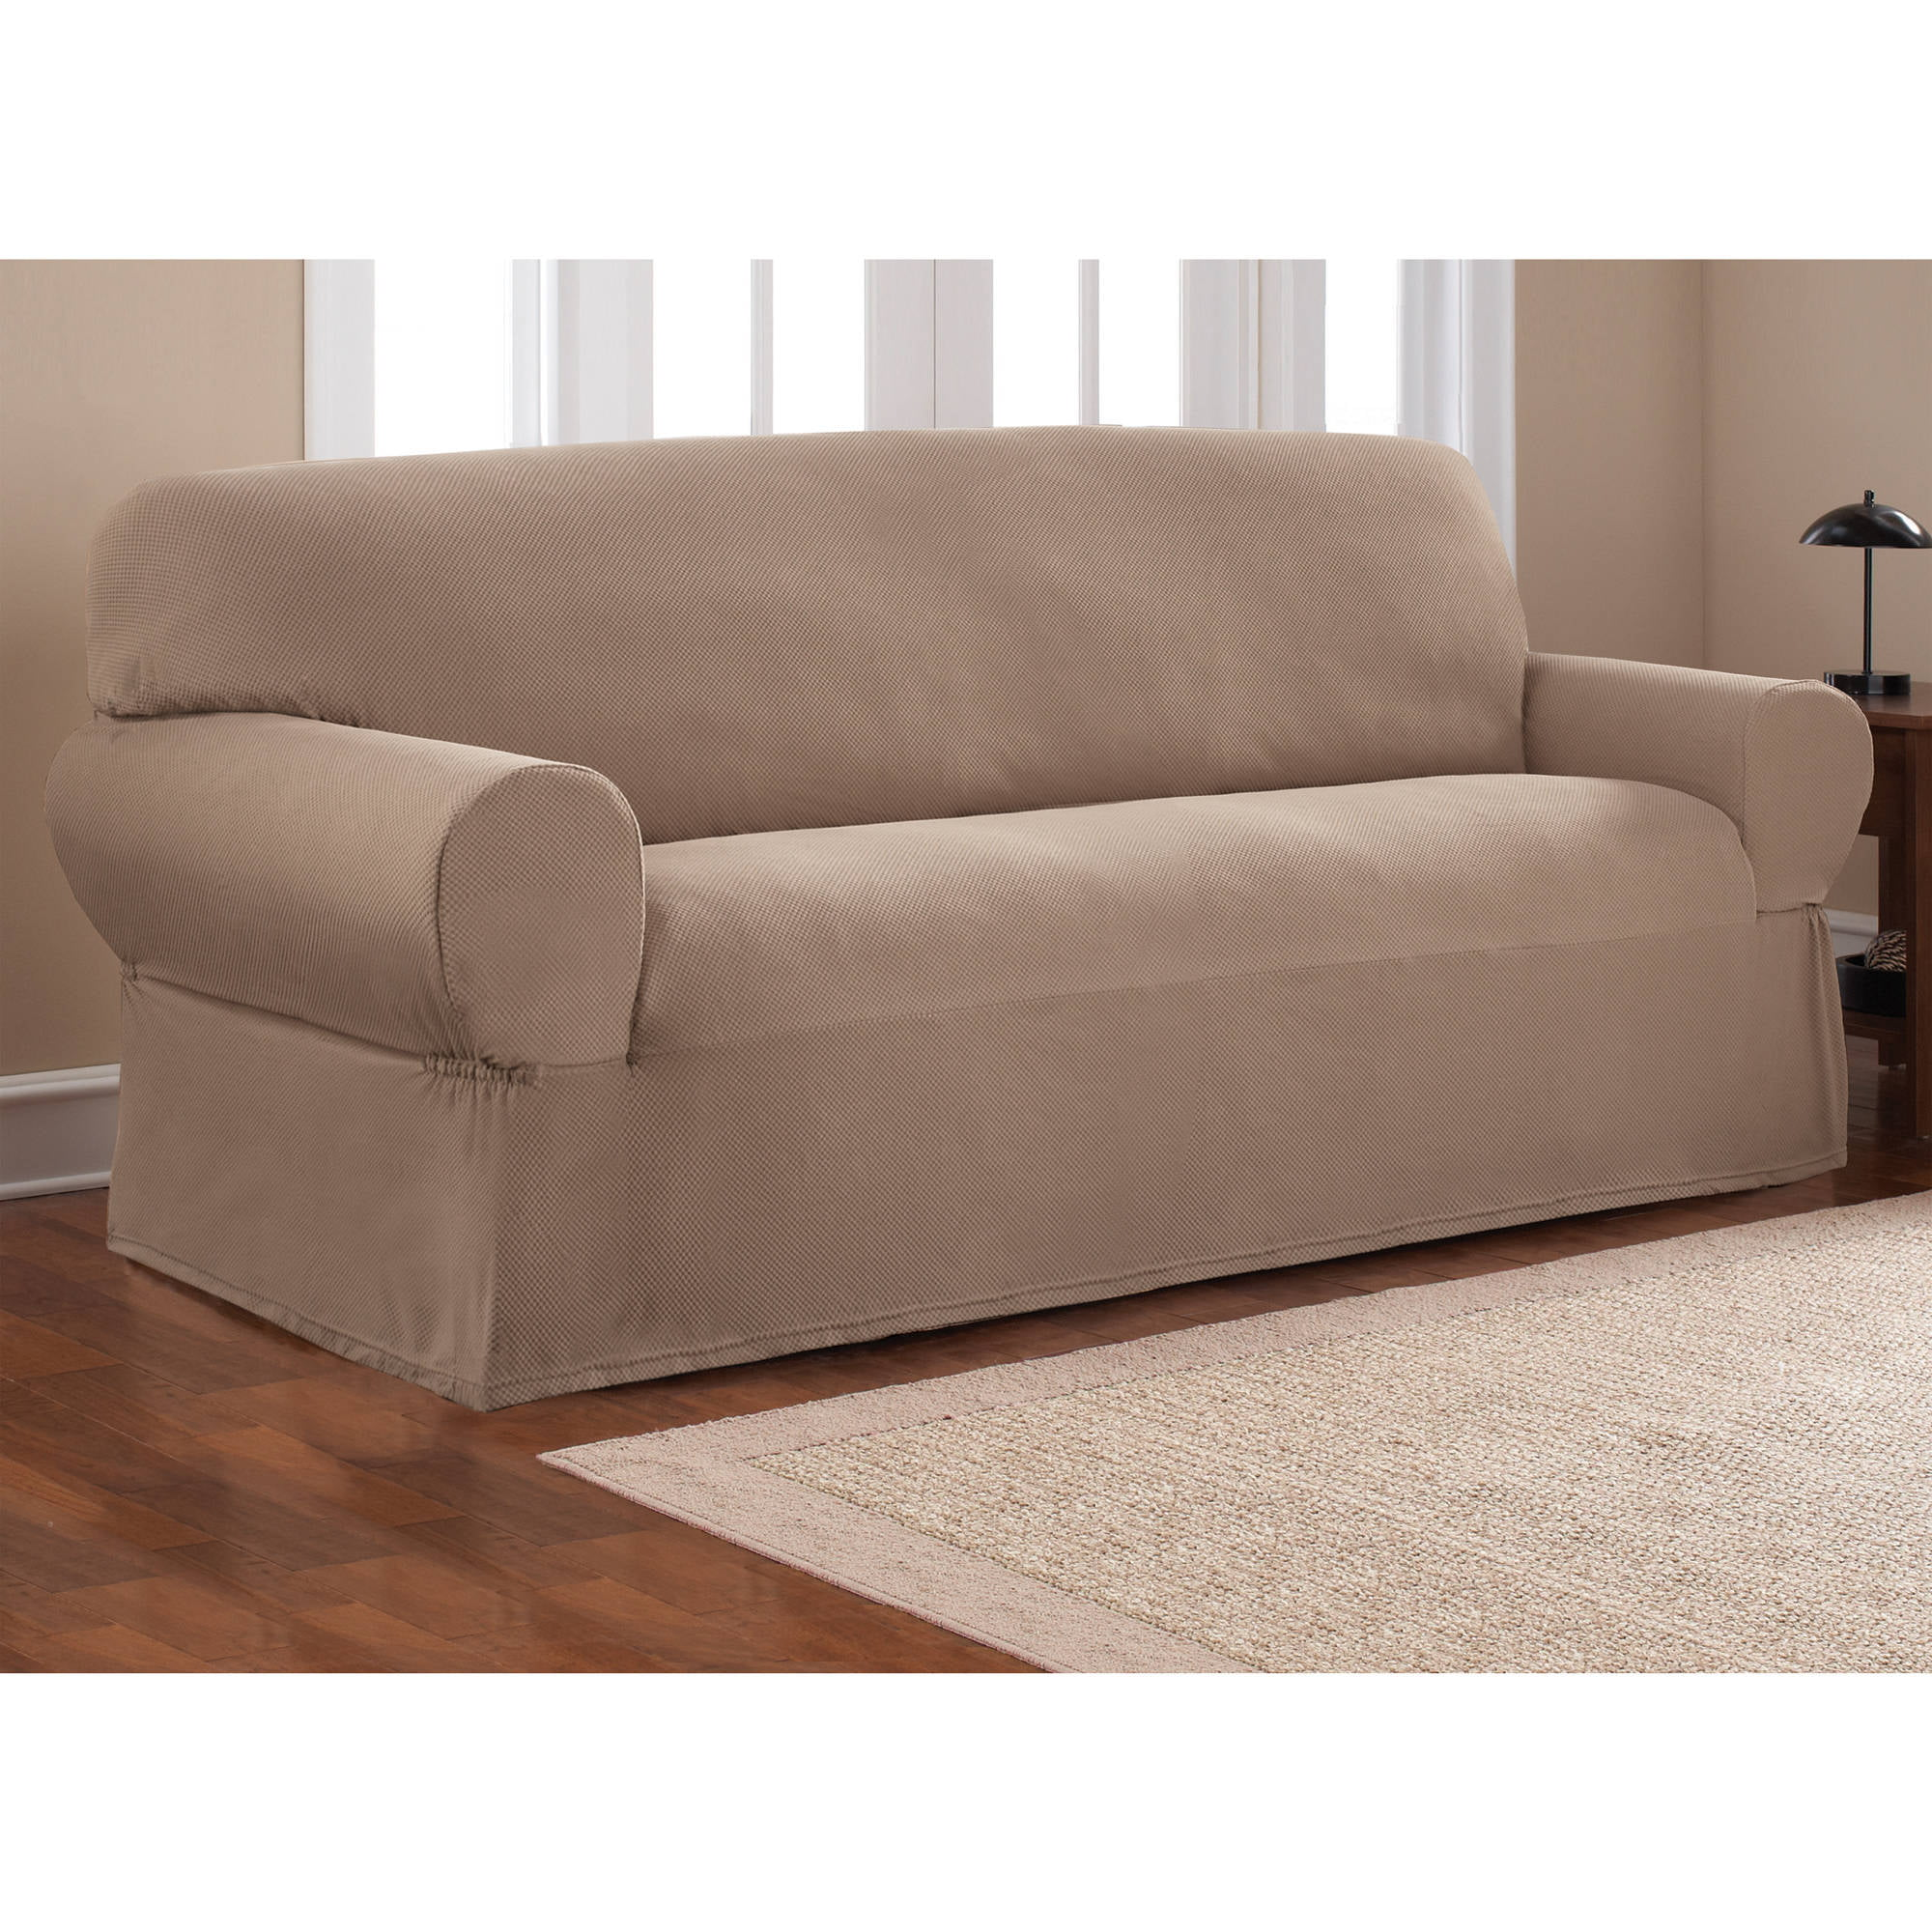 slipcover sofa sure fit furniture plush pdx comfort wayfair reviews